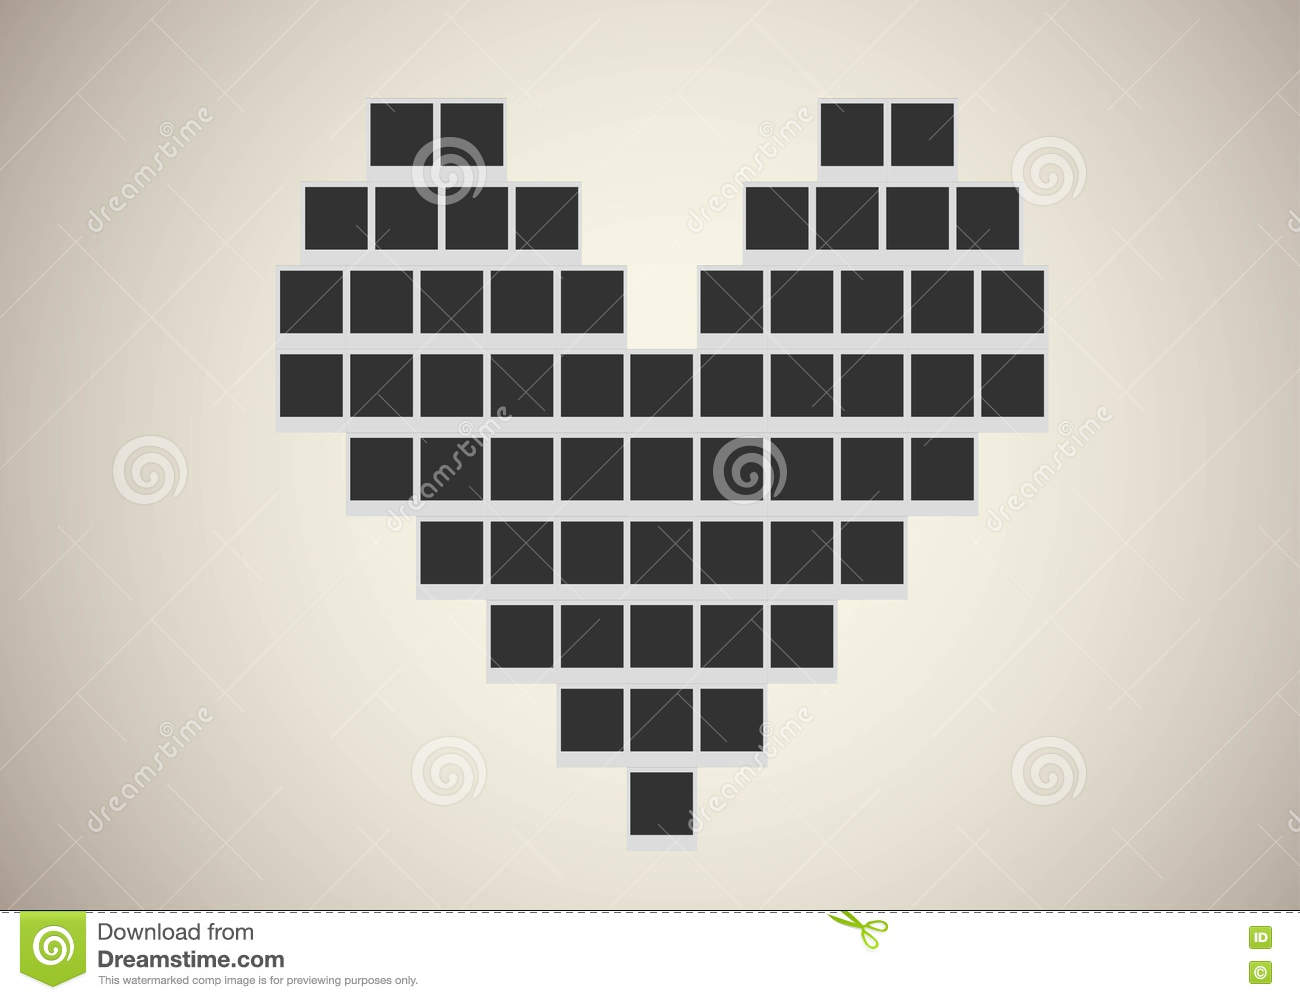 Exceptionnel Polaroid Photo Frame In Heart Shape Stock Vector - Image: 73024733 ES75